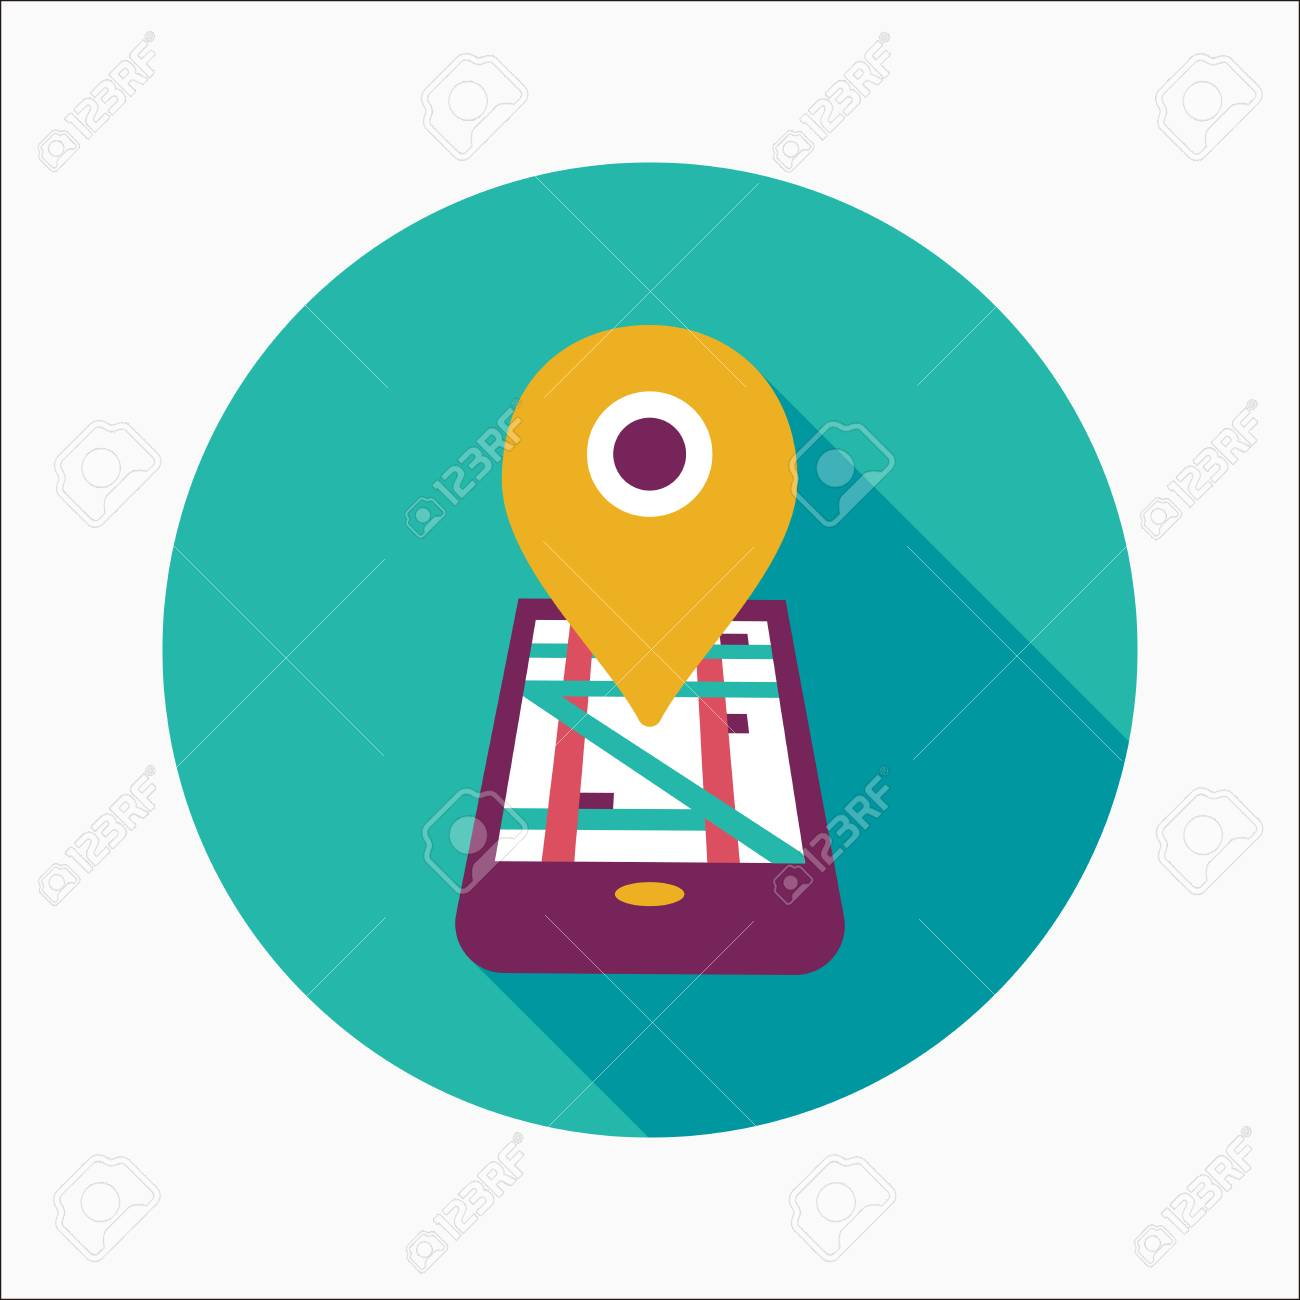 Navigation concept flat icon with long shadow - 30653130